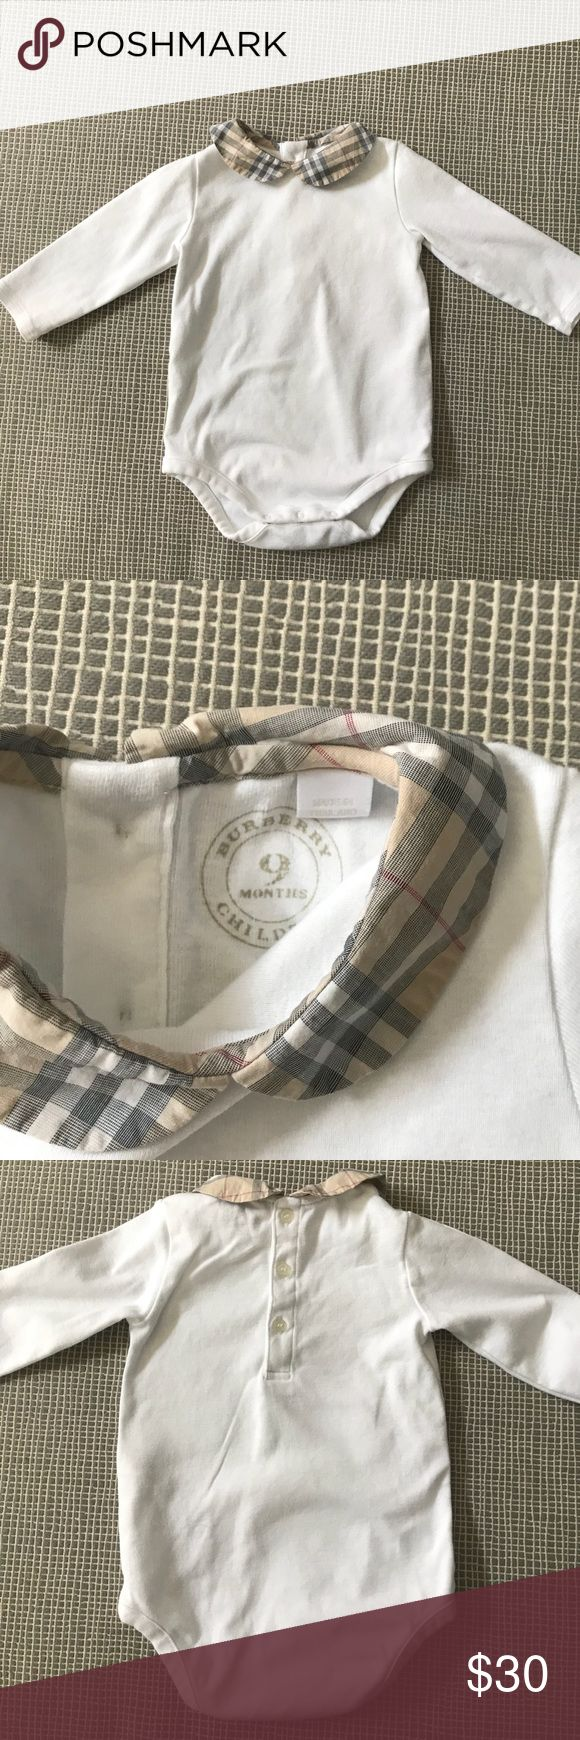 Burberry Baby Girl Top Precious Burberry Baby Girl Top in great pre-owned condition! Slight stain near bottom as seen in last picture. Would not show if worn with skirt, shorts, or pants. Burberry Shirts & Tops